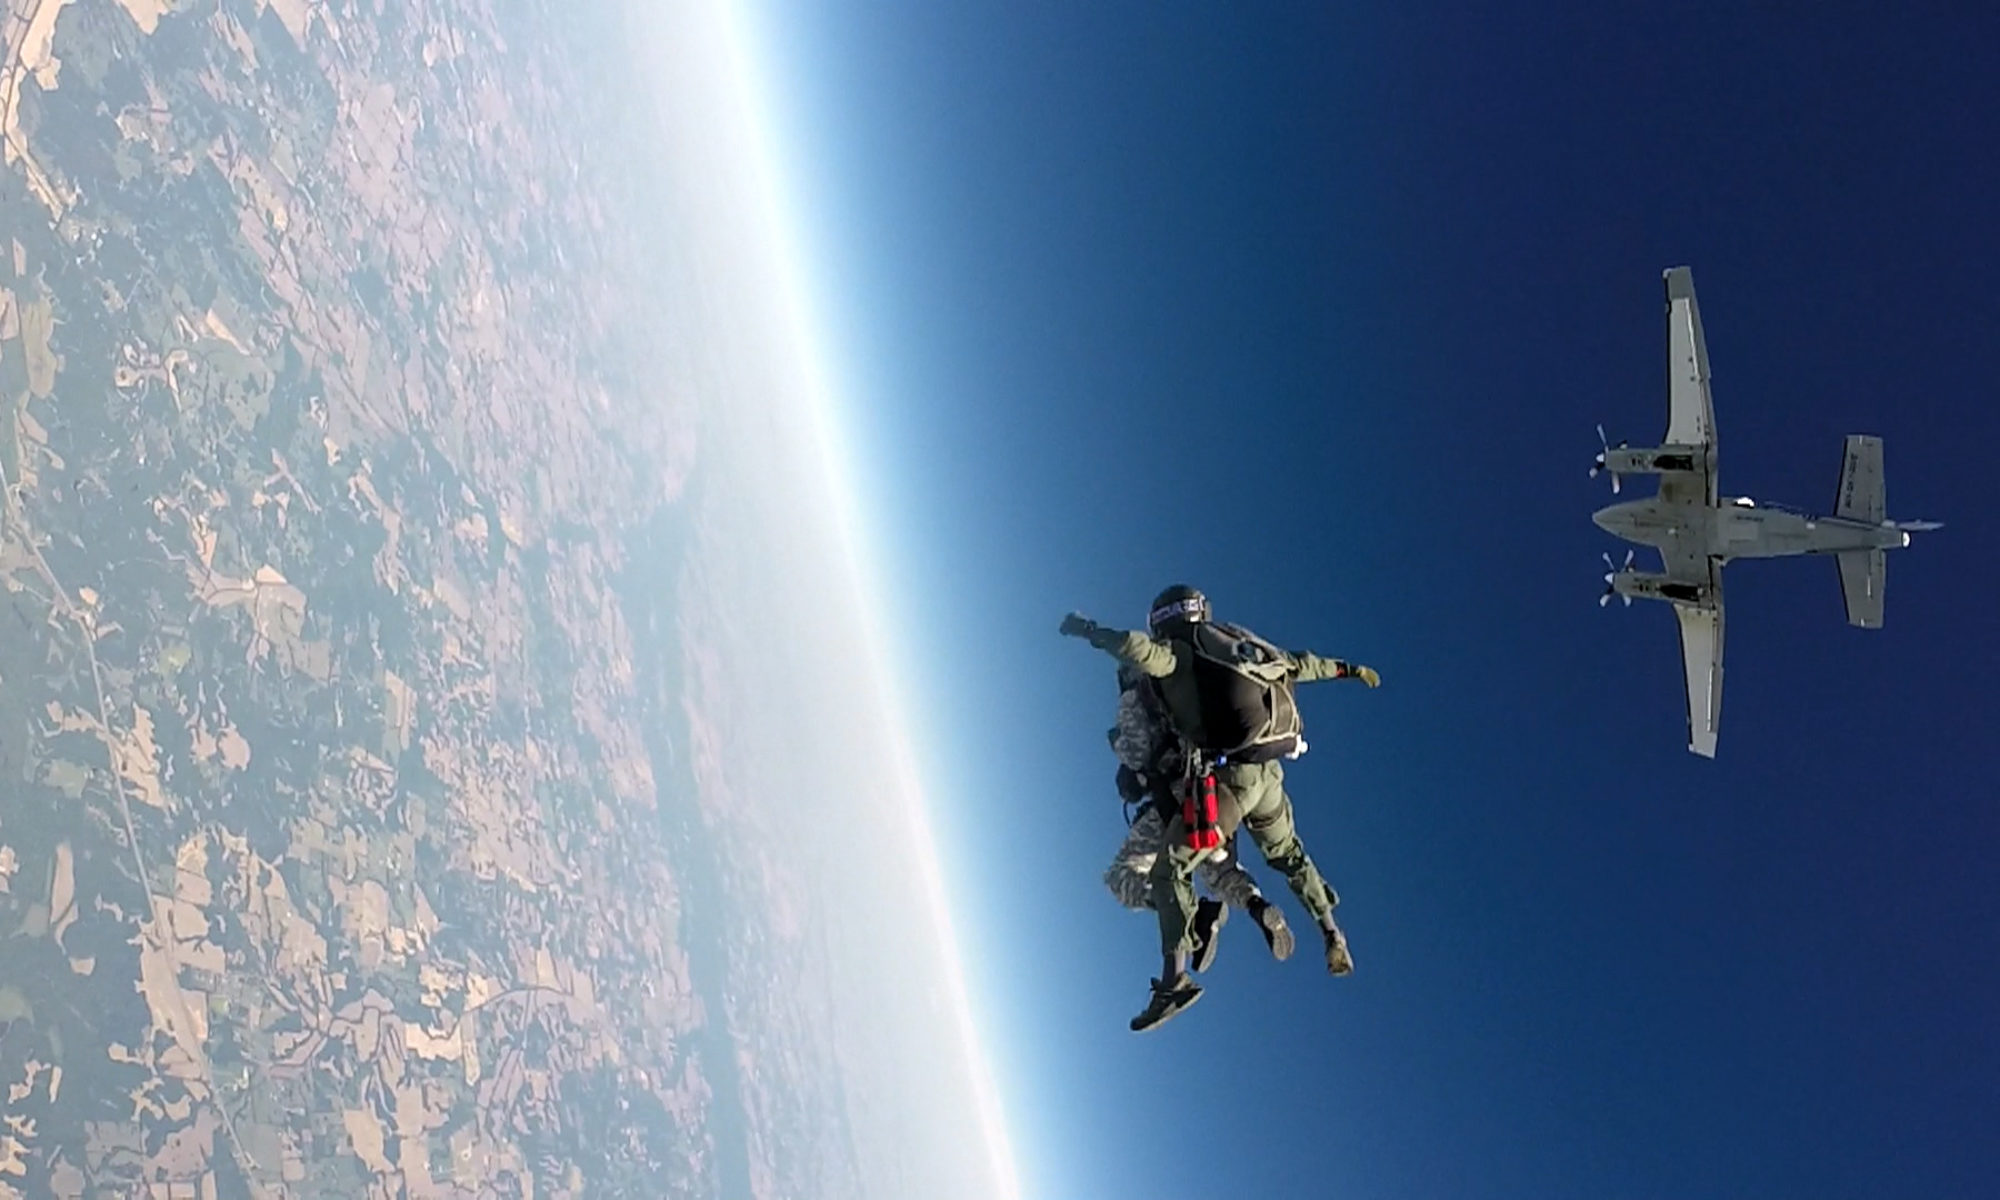 Skydive High